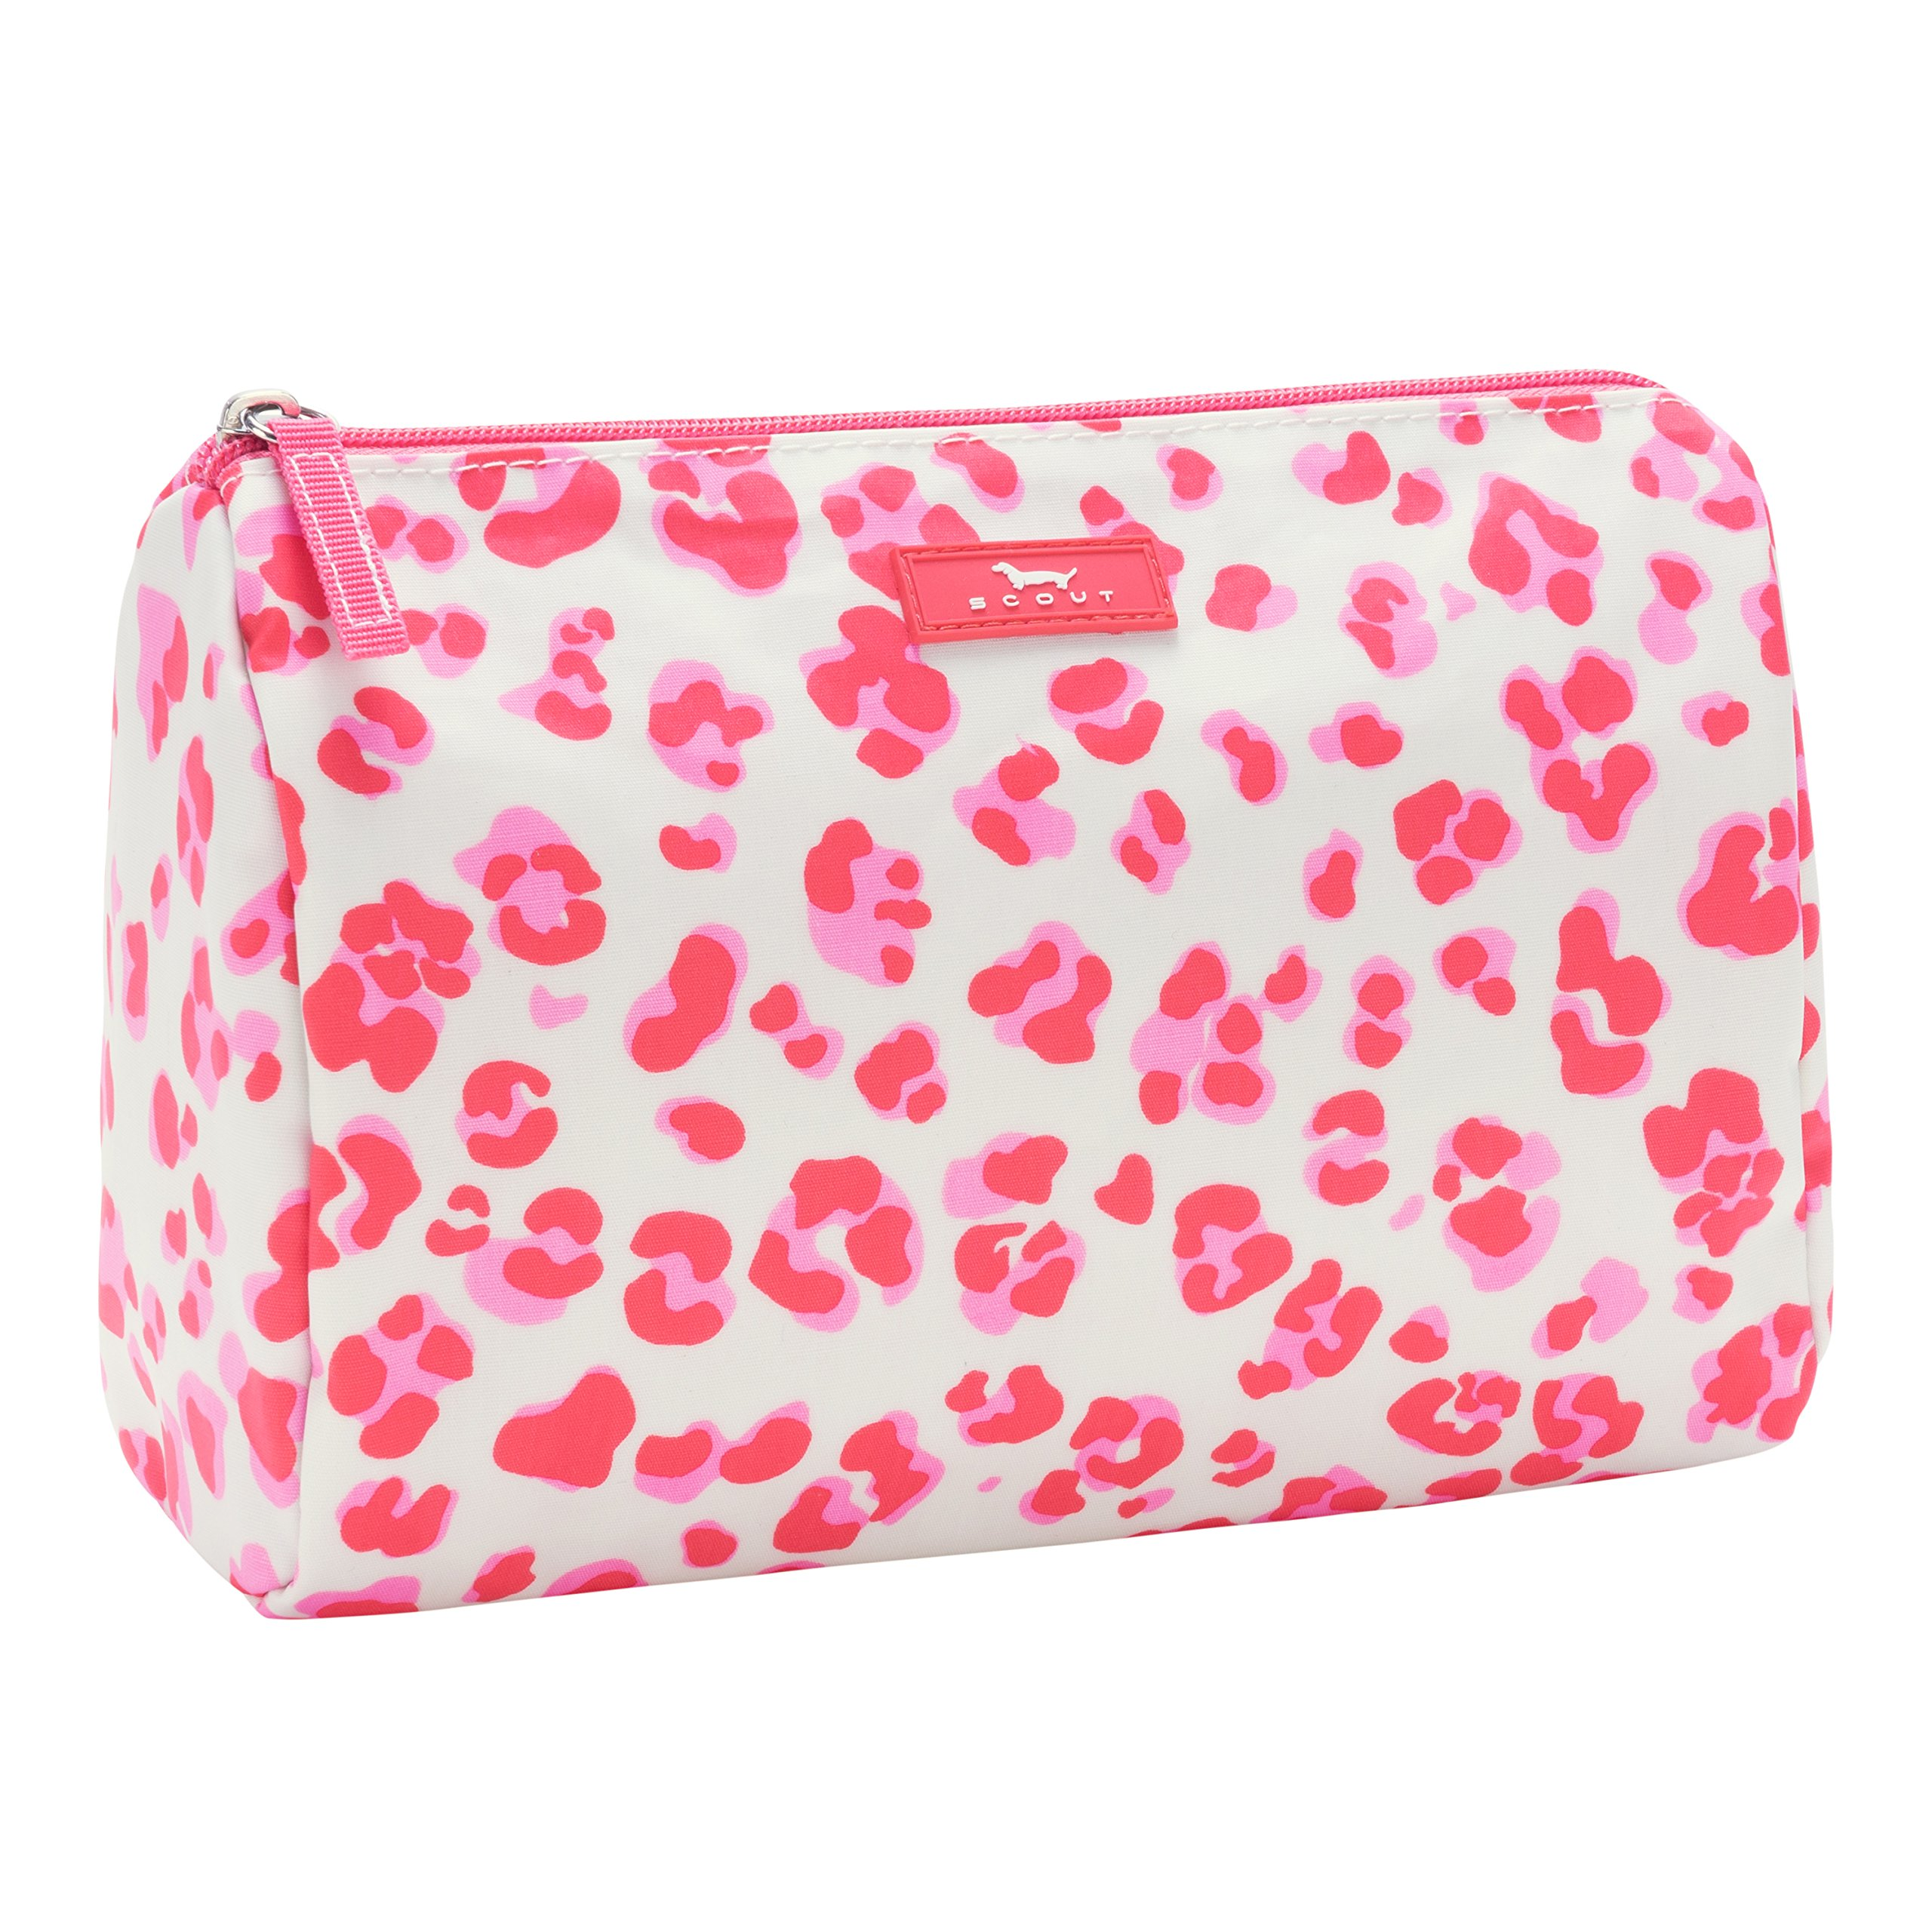 SCOUT Packin' Heat Makeup & Cosmetic, Accessory or Toiletry Bag, Interior Pocket, Water Resistant, Zips Closed, Too Pawsh